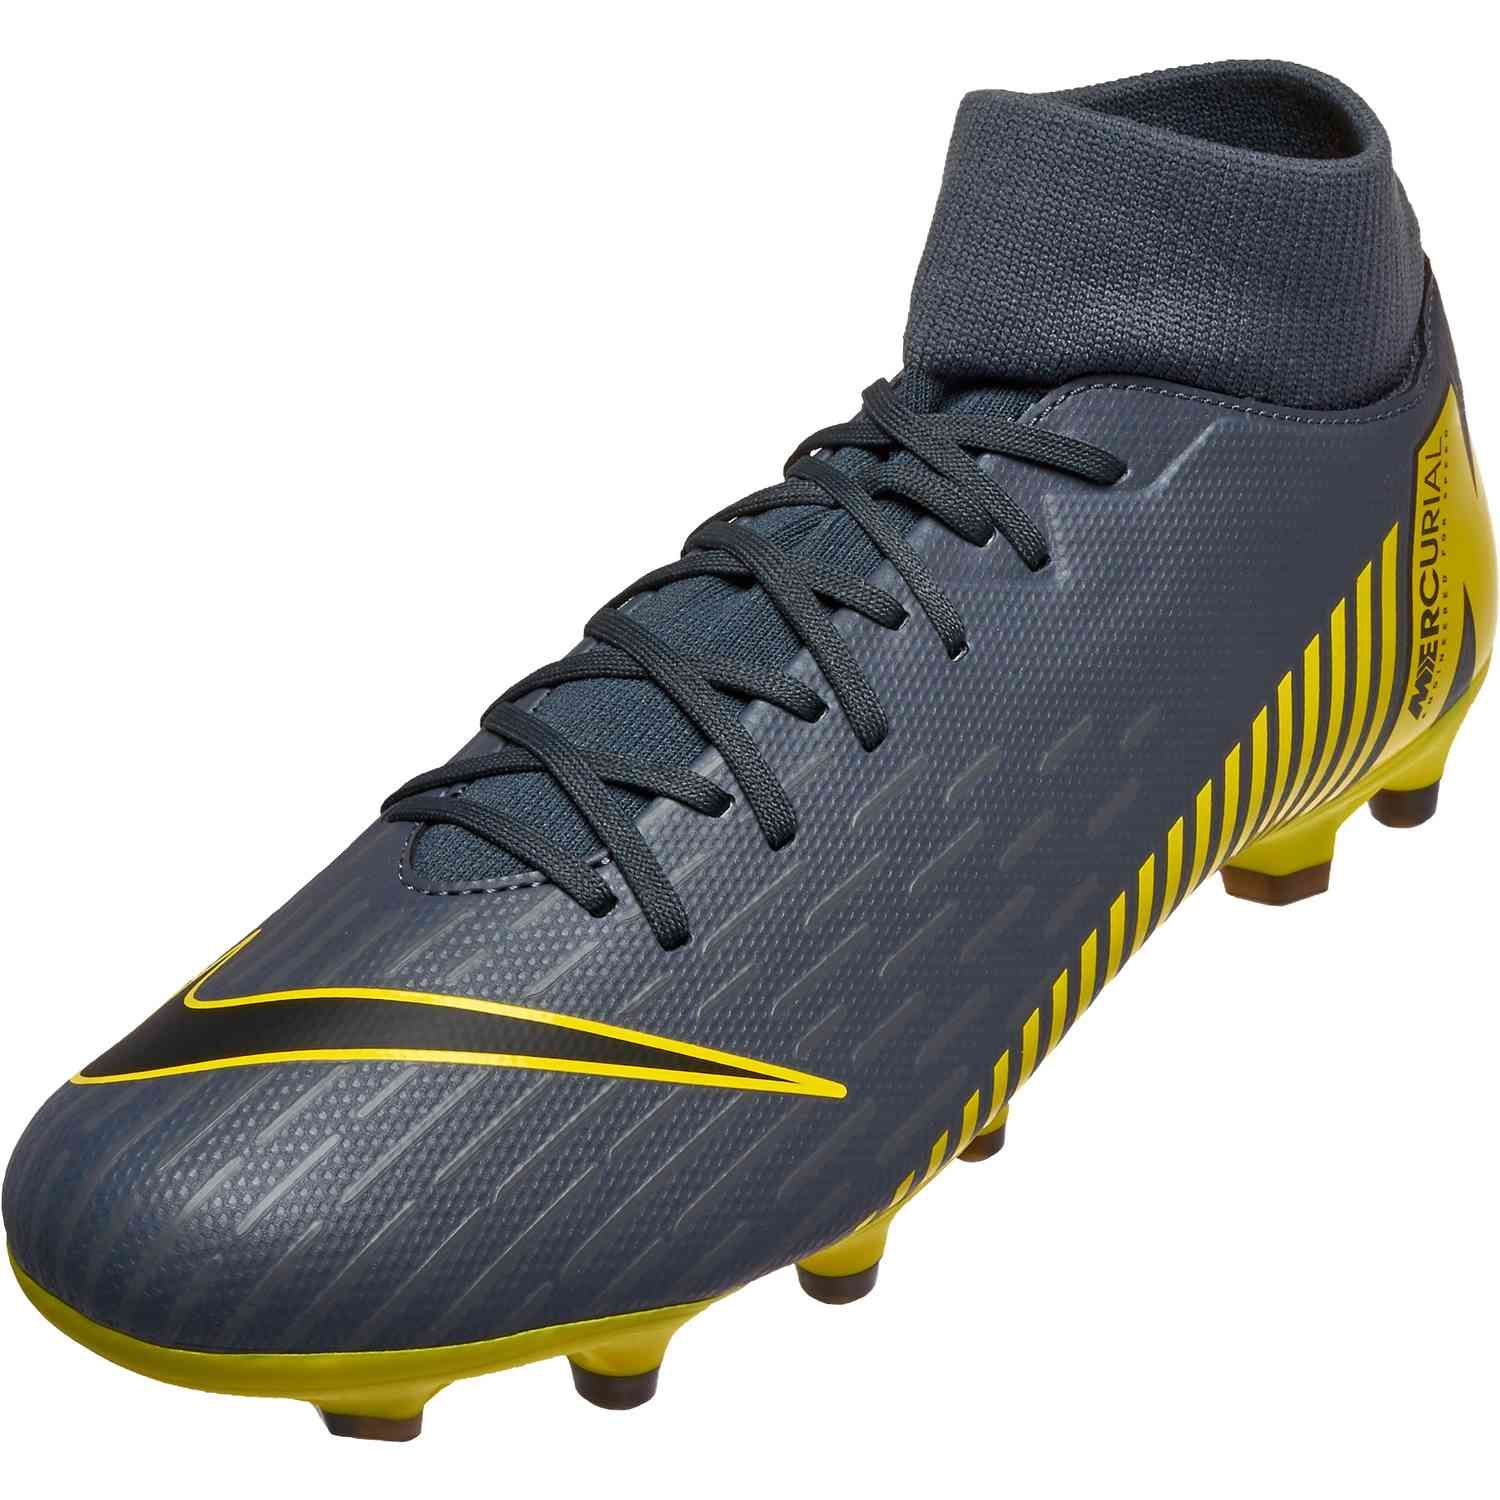 Nike Mercurial Superfly 6 Academy Mg Game Over Soccerpro Kids Football Boots Nike Football Boots Soccer Boots